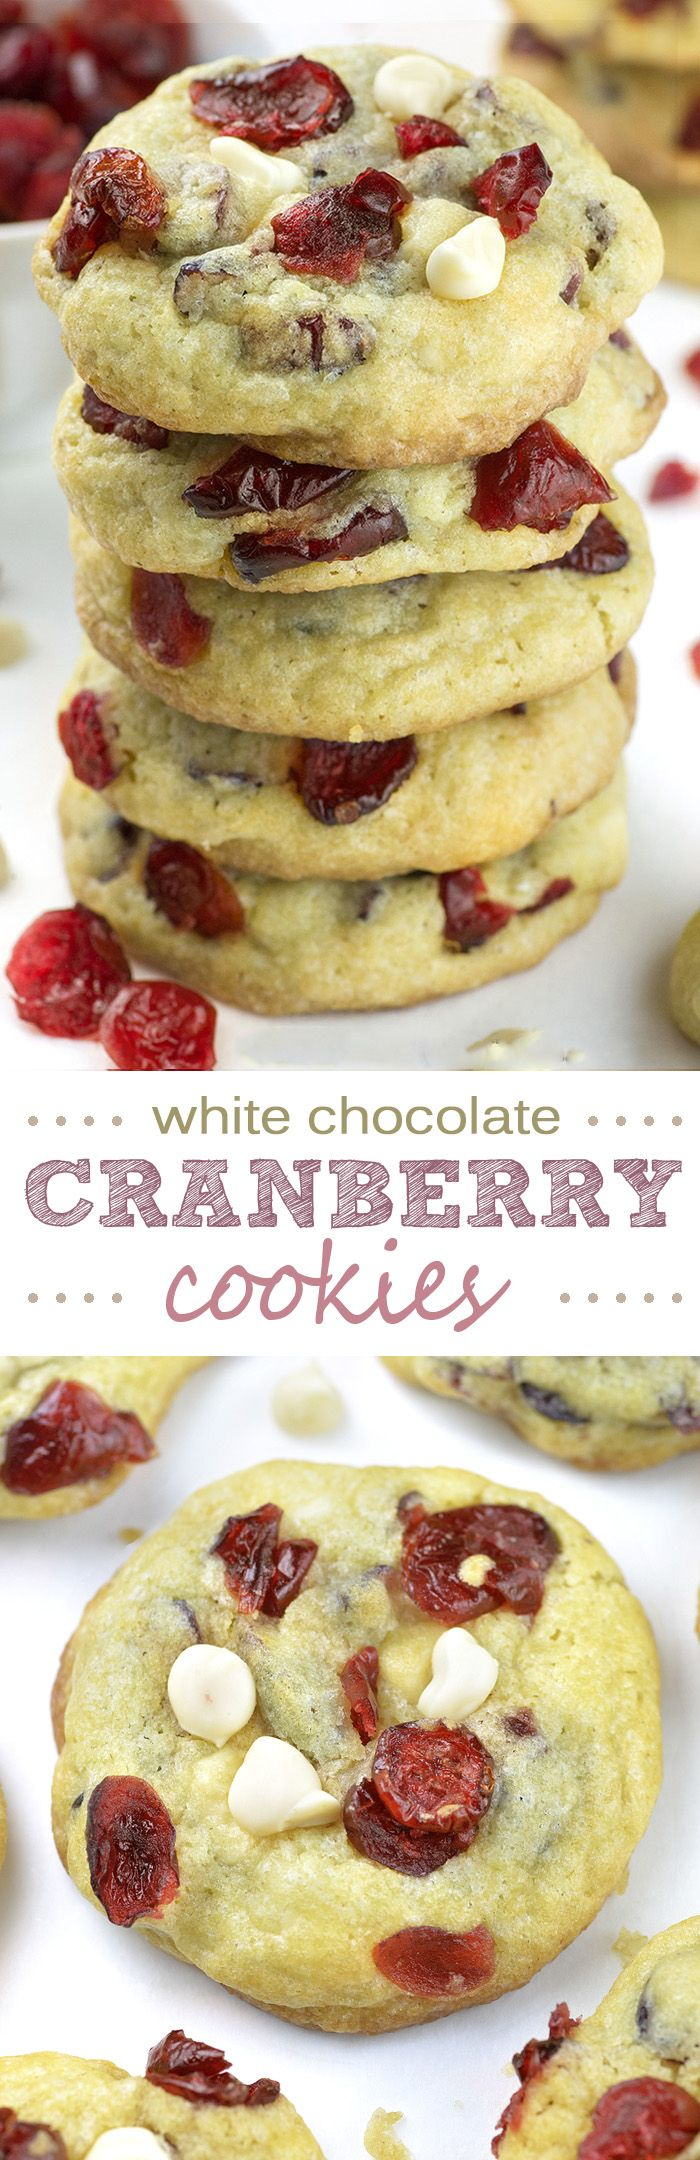 White Chocolate Cranberry Cookies - imagine a bunch of sweet and tangy dried red cranberries and white chocolate chunks held together with rich and buttery cookie dough. WOW!